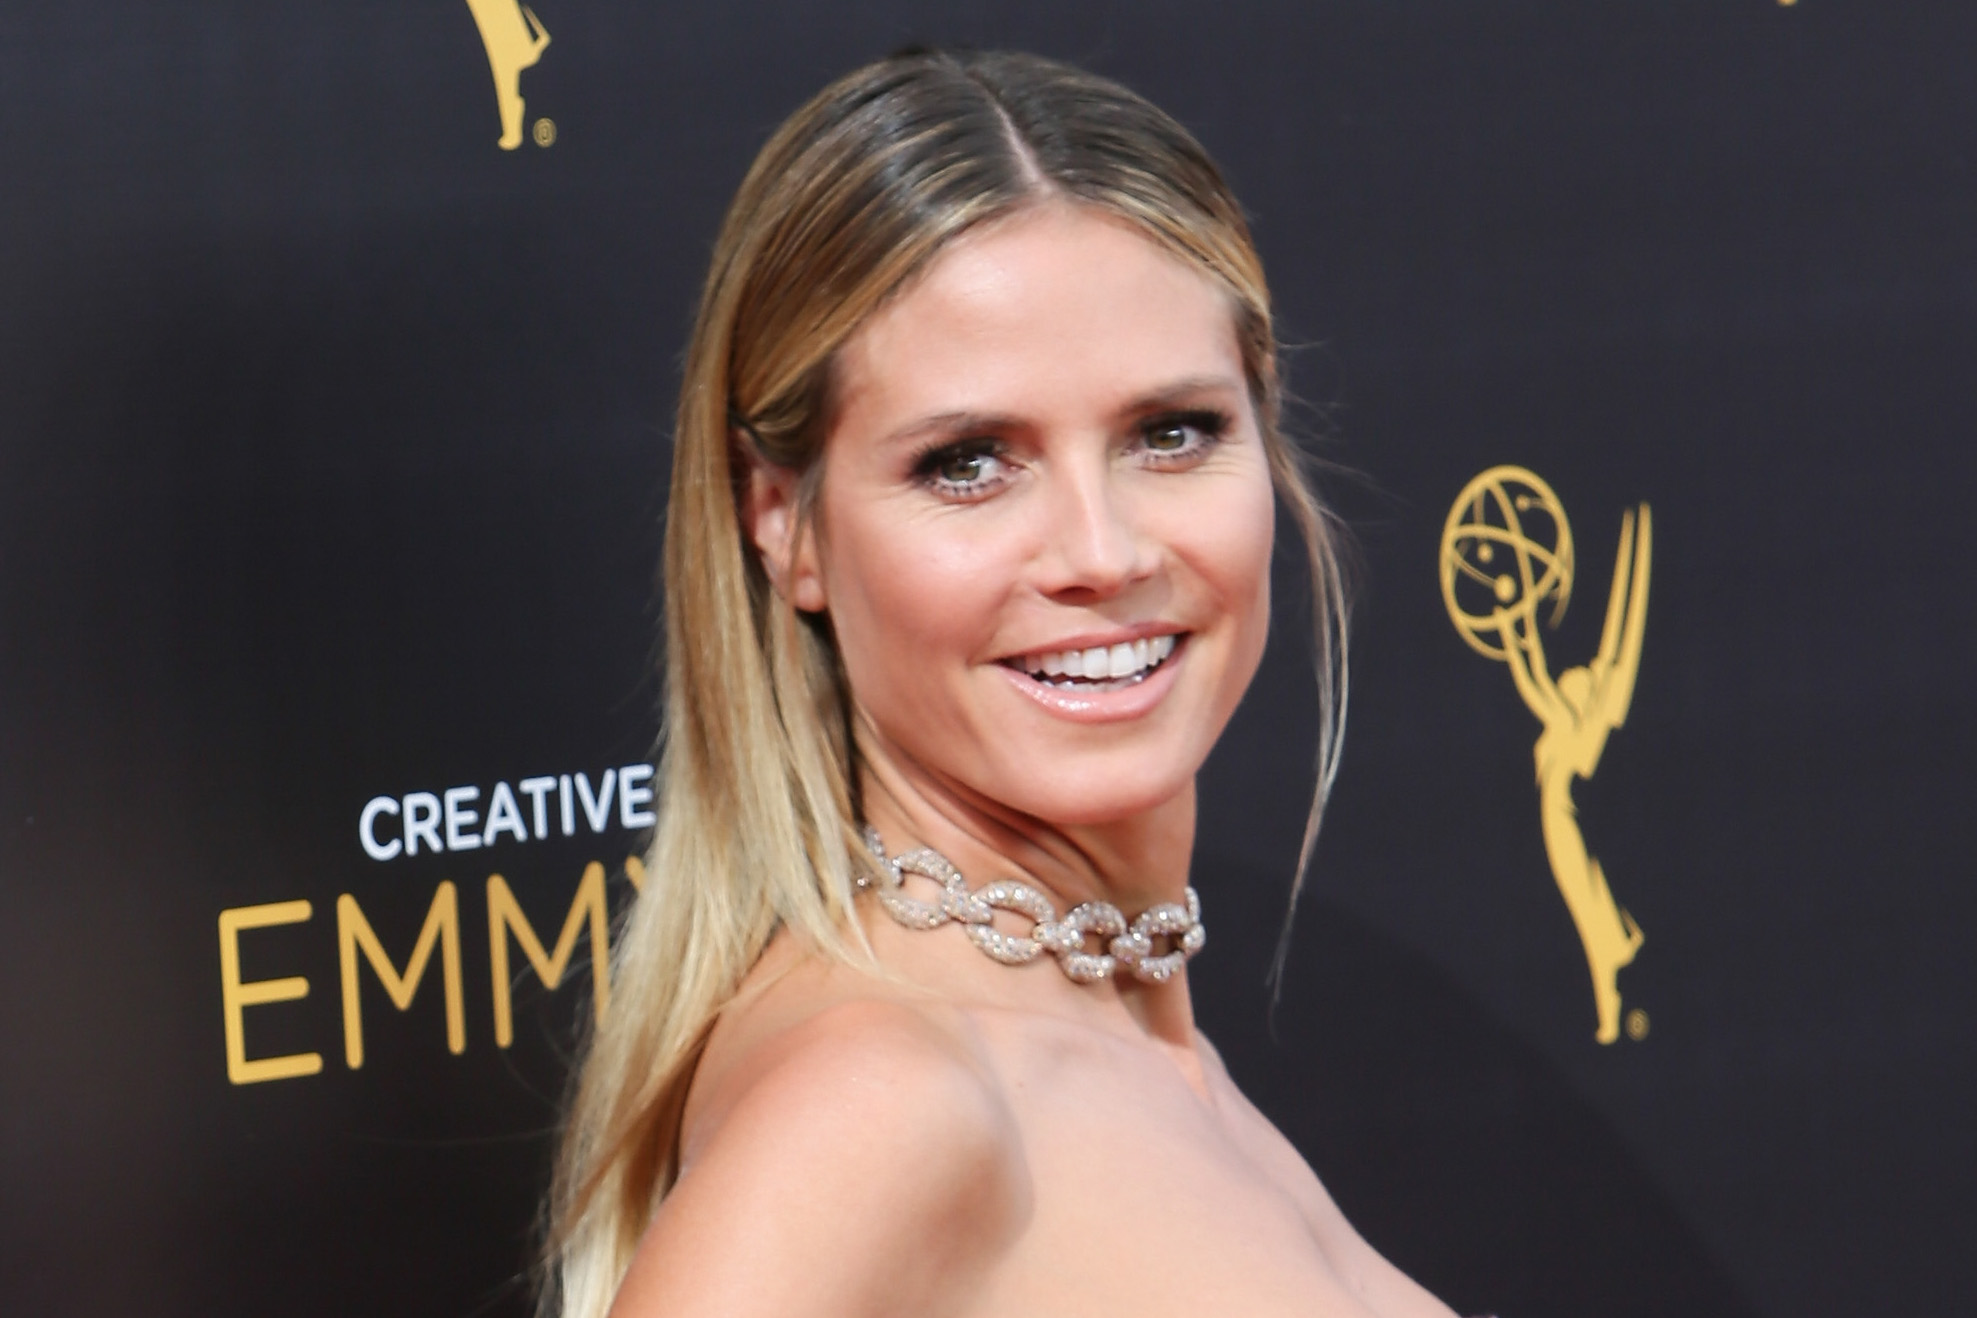 Heidi Klum goofing around on a swimsuit photo shoot is too cute for words